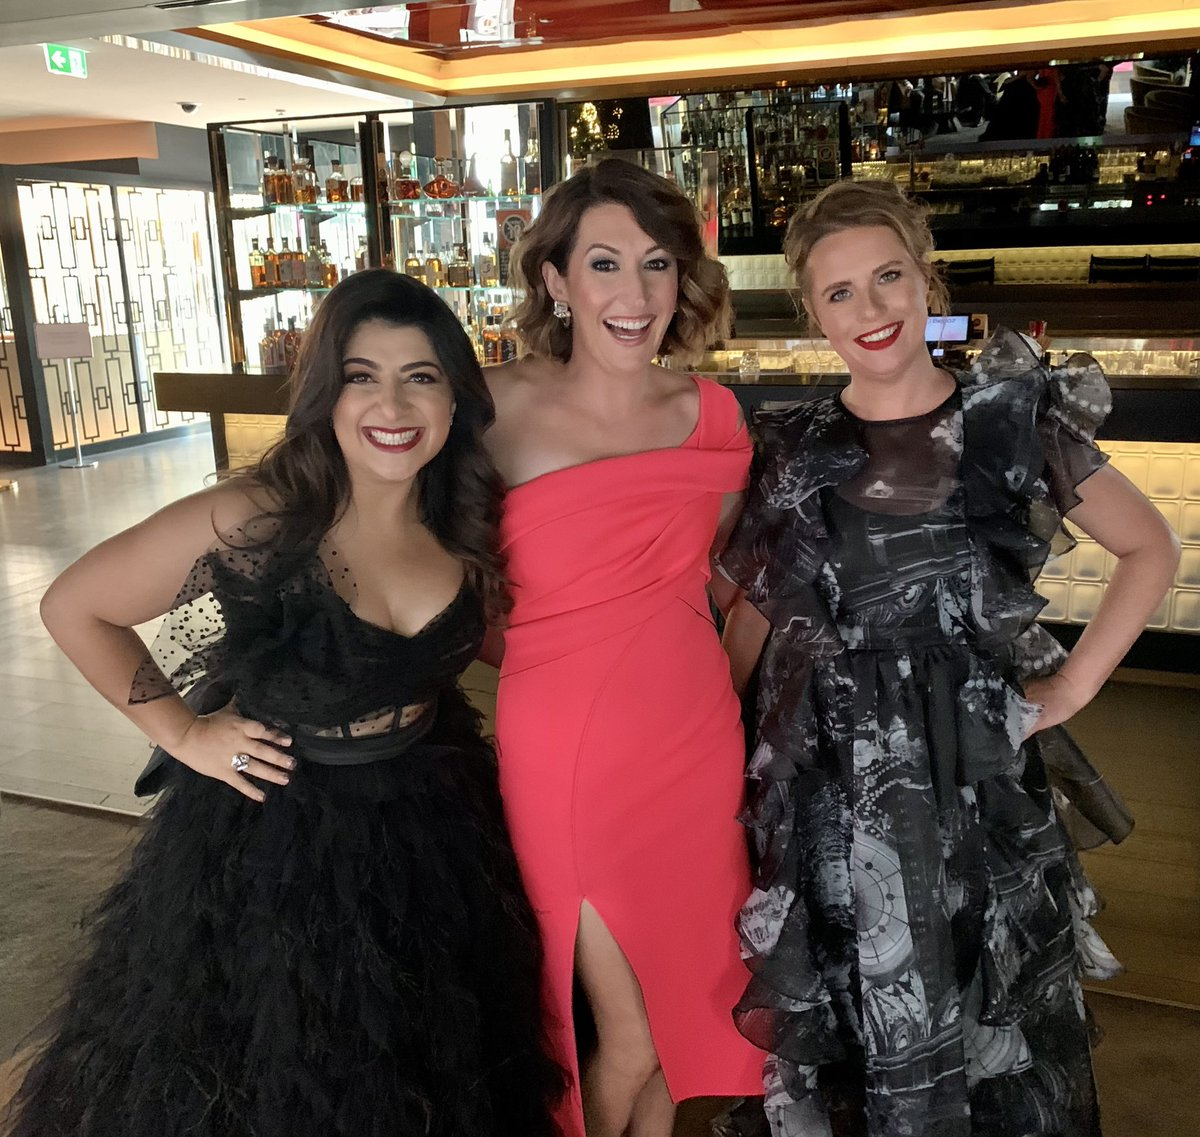 Is it fair that these three are super funny, super smart and super hot? No. It is not fair. Hashtag comedy babes. ⁦@SusieYoussef⁩ ⁦@CeliaPacquola⁩ ⁦@anneedmonds1⁩ #AACTAs